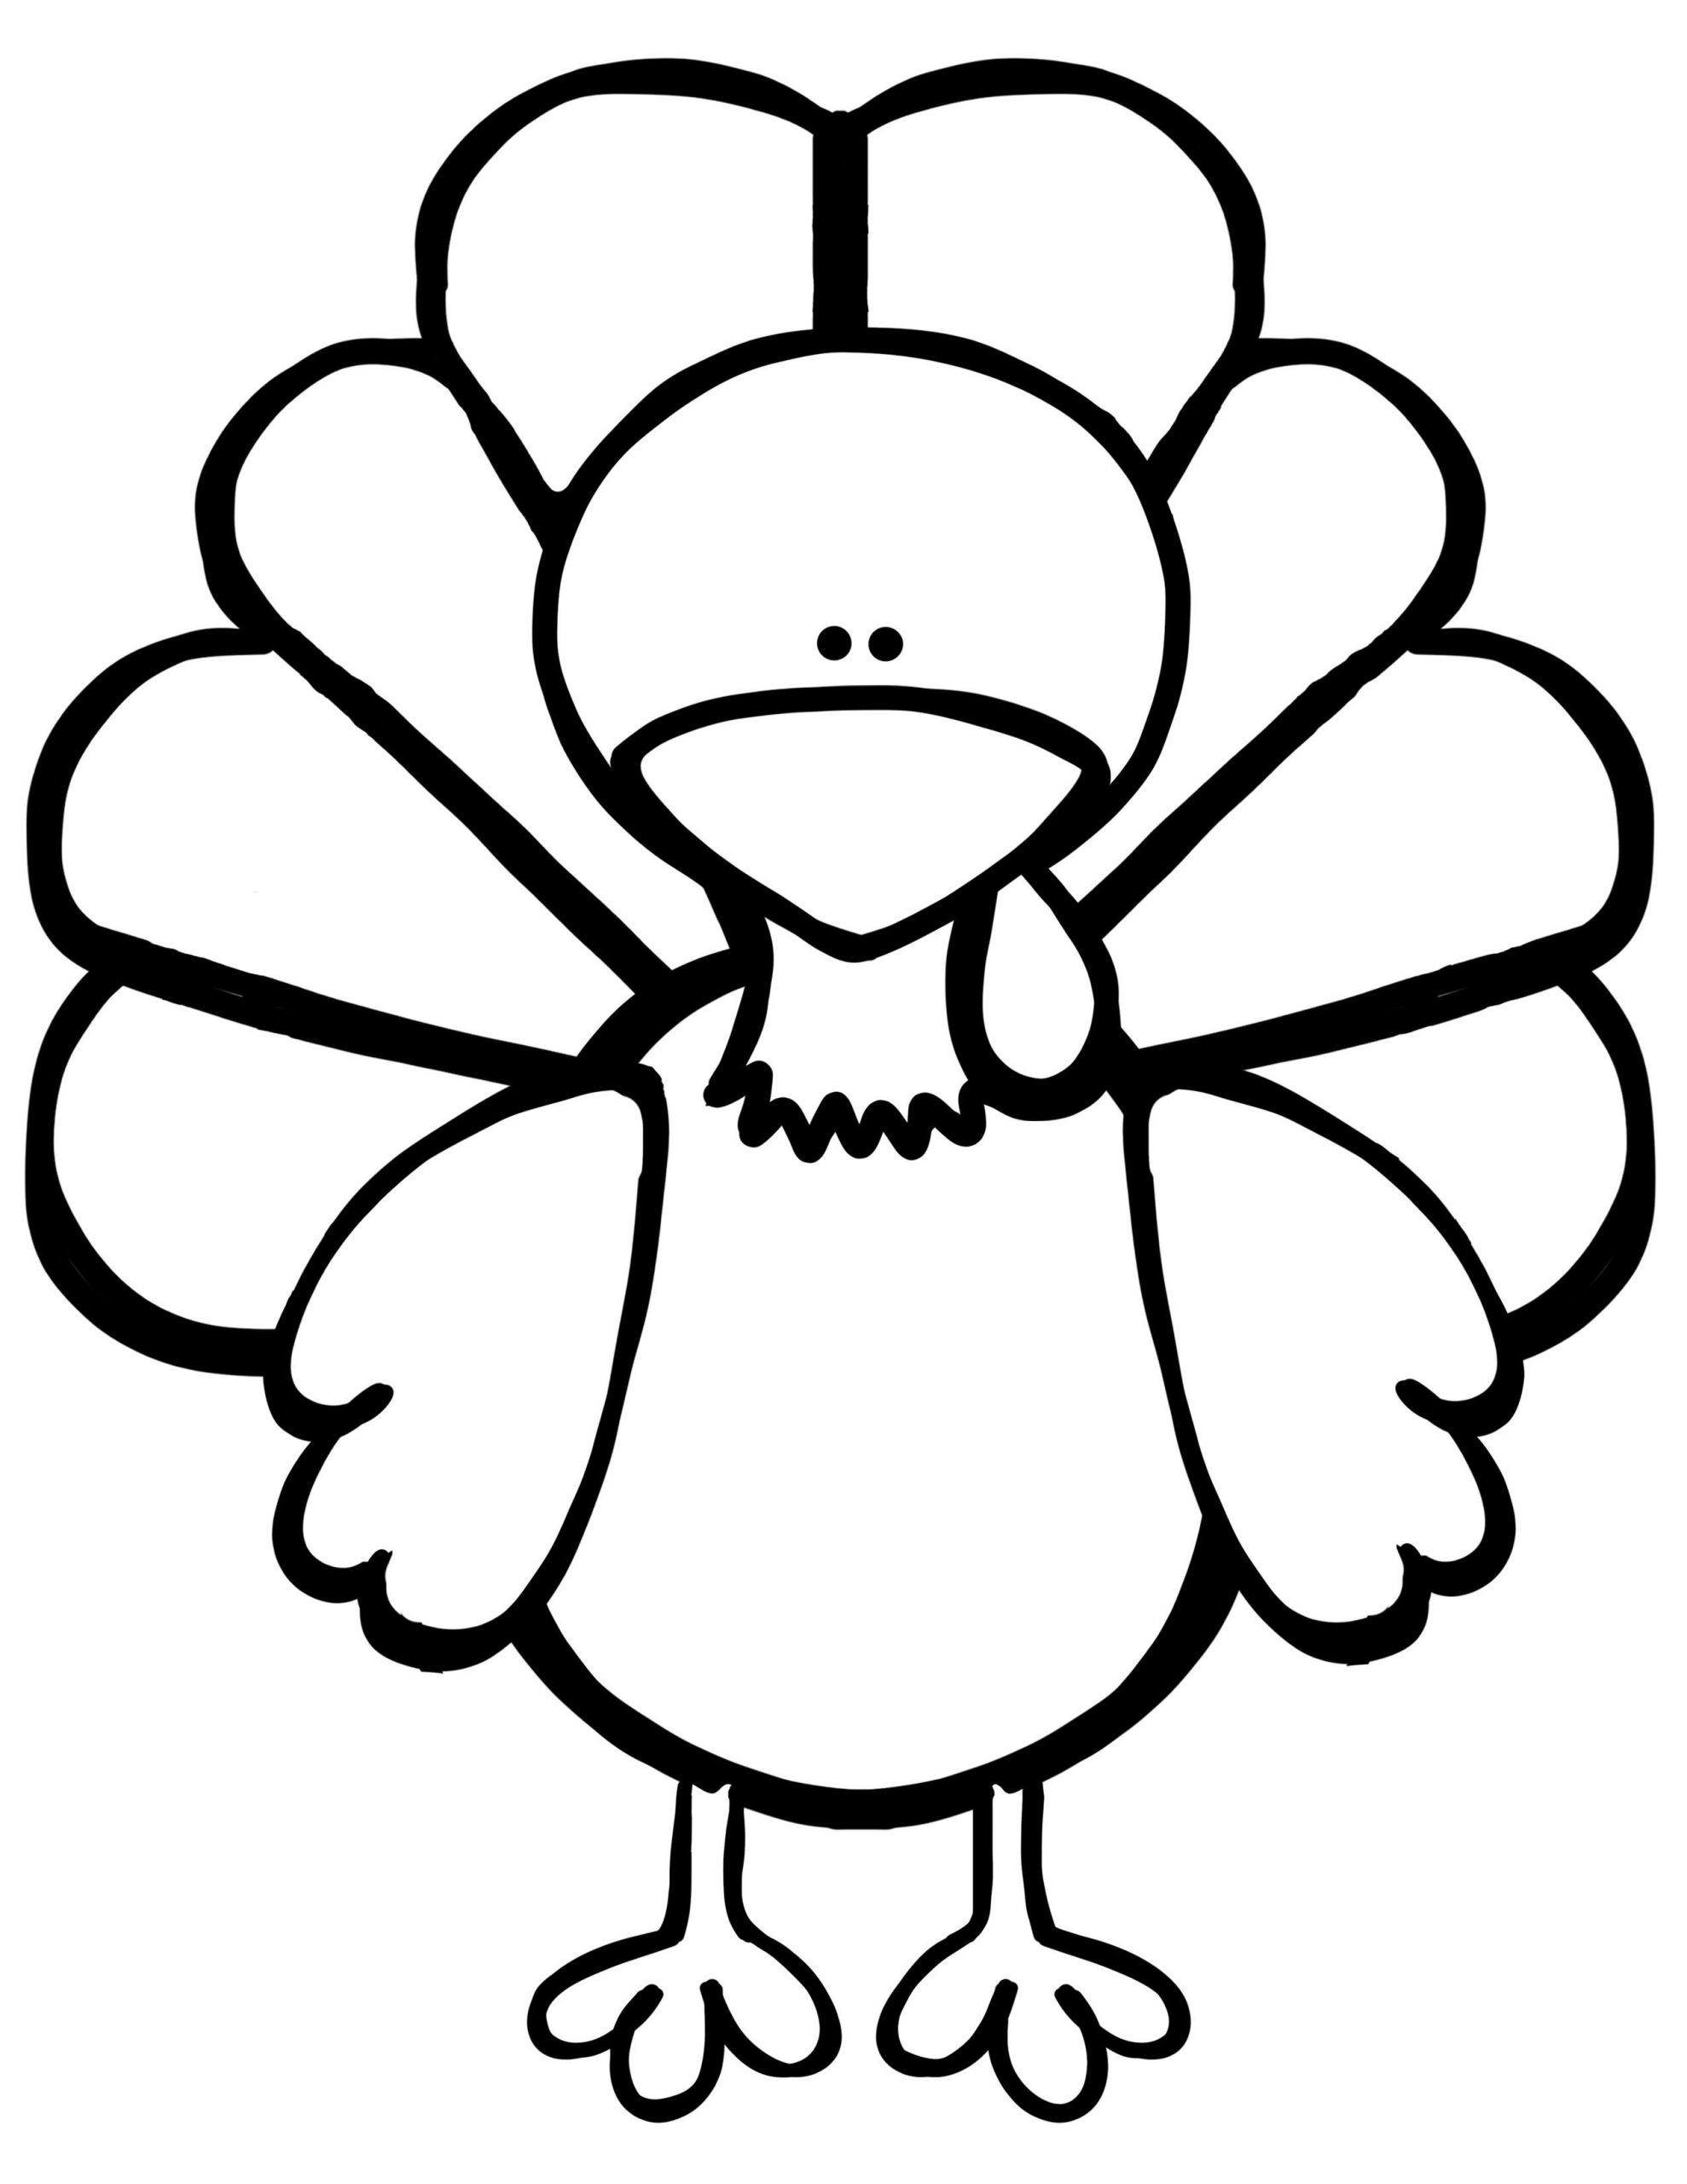 Turkey In Disguise Coloring Page Youngandtae Com Turkey Disguise Turkey Disguise Project Turkey Art